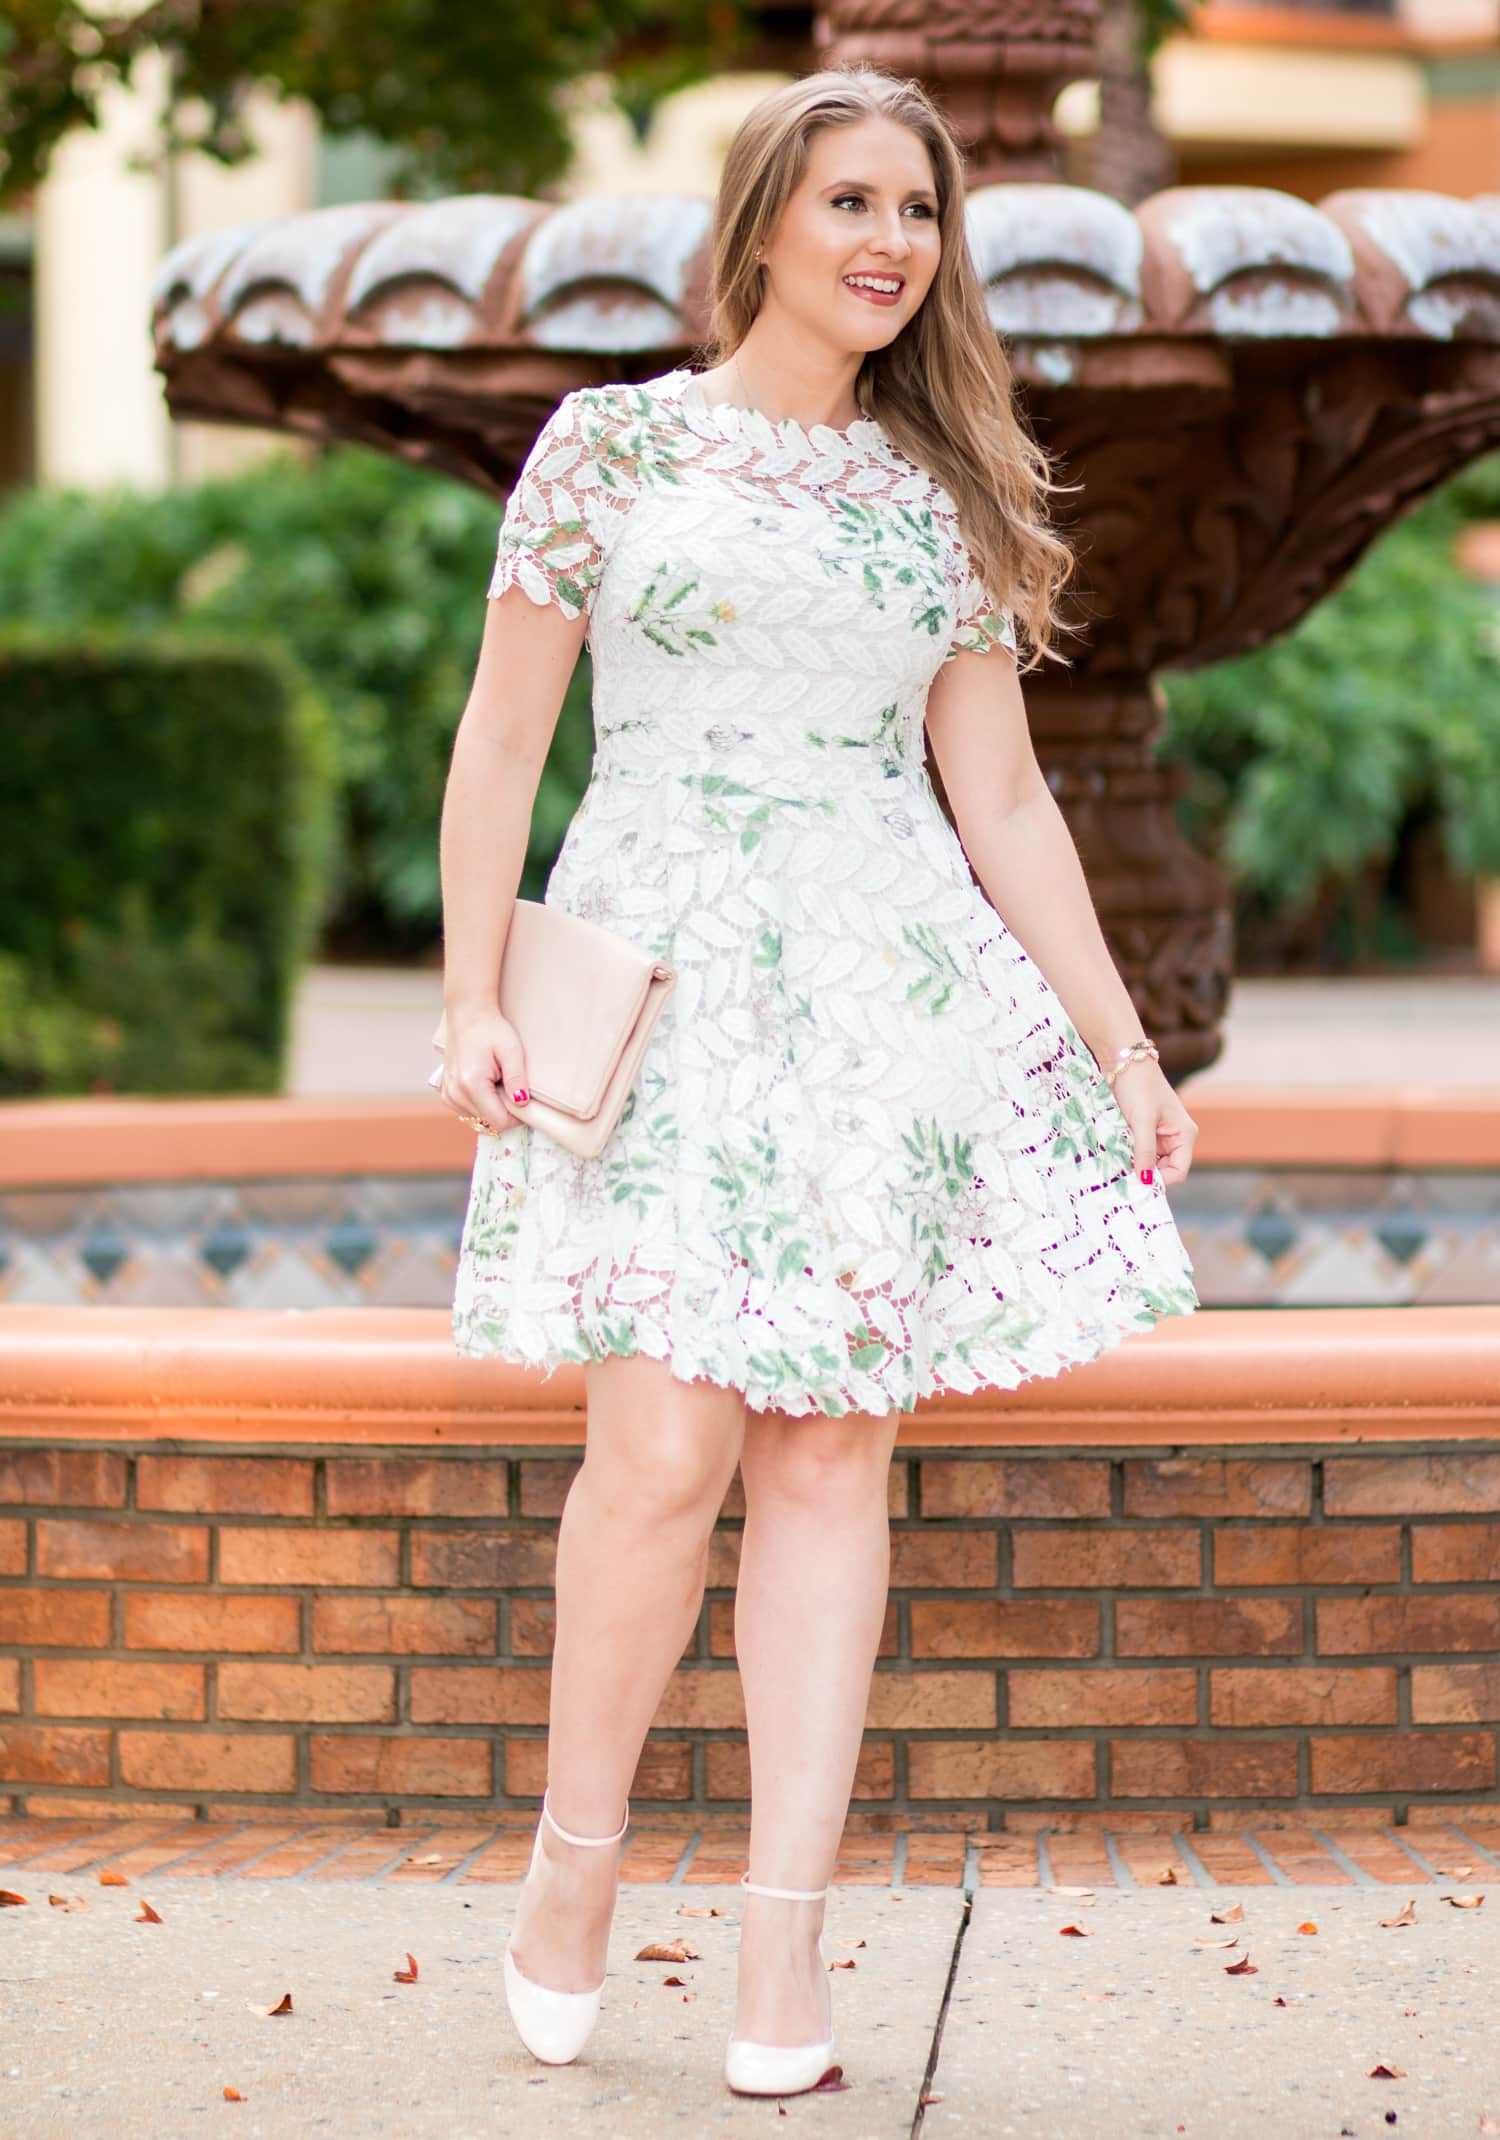 The White Lace Dress You Need This Season